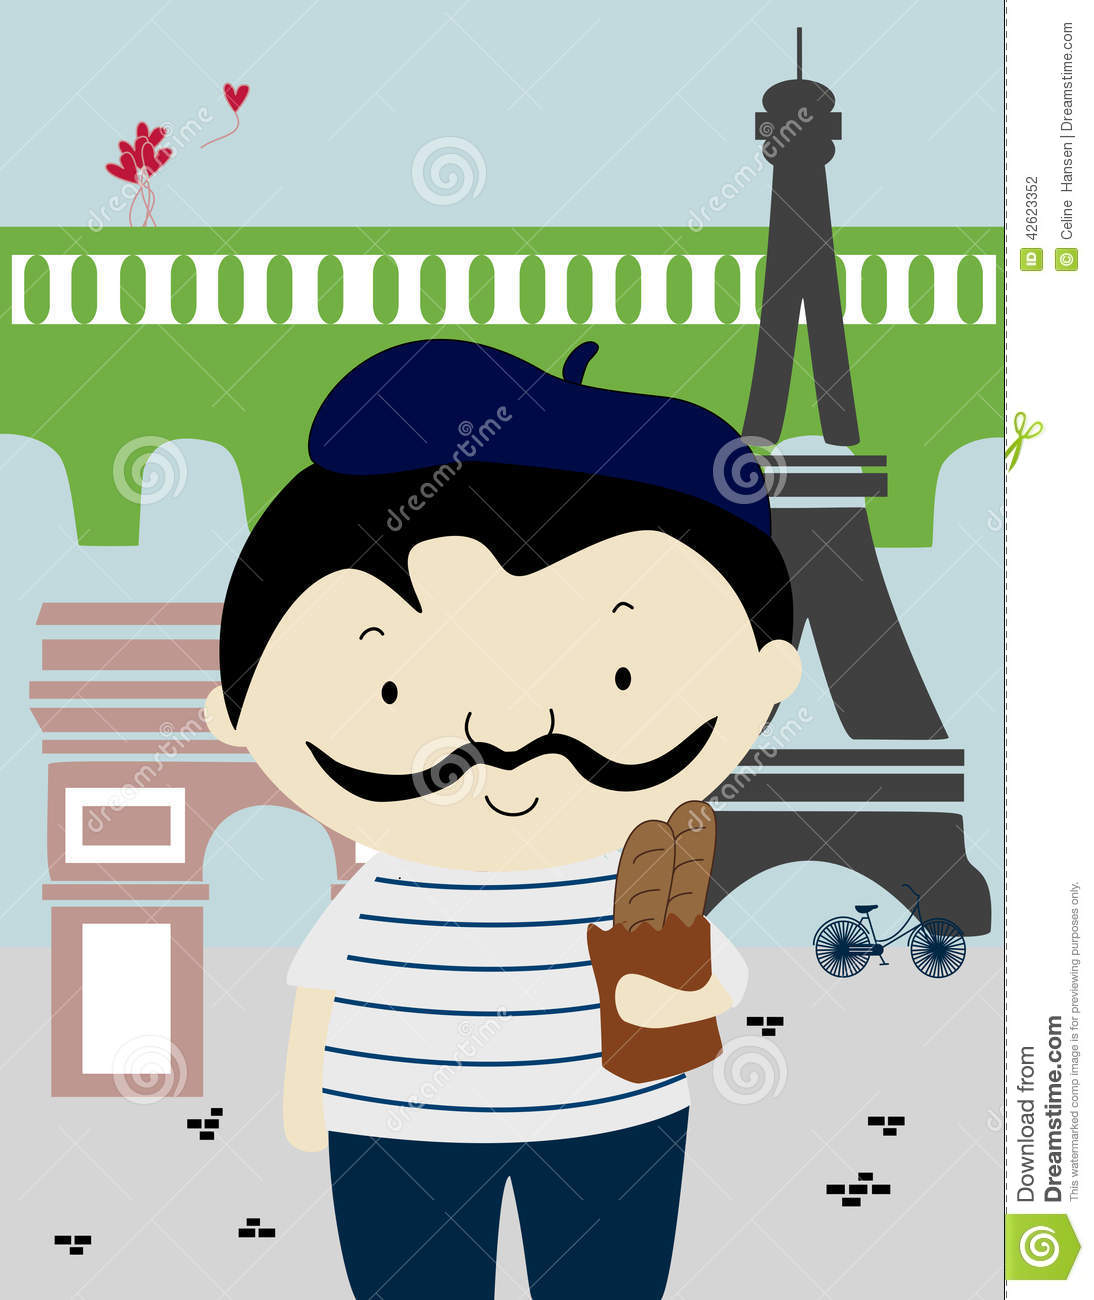 Paris in addition Cartoon England Elements Set On White Background Gm494850694 77677651 further Stock Illustration Kuala Lumpur Landmarks Bright Collage Vector Illustration Image51964095 moreover Mary Jane Watson besides Panorama Brooklyn Bridge New York. on tower bridge cartoon